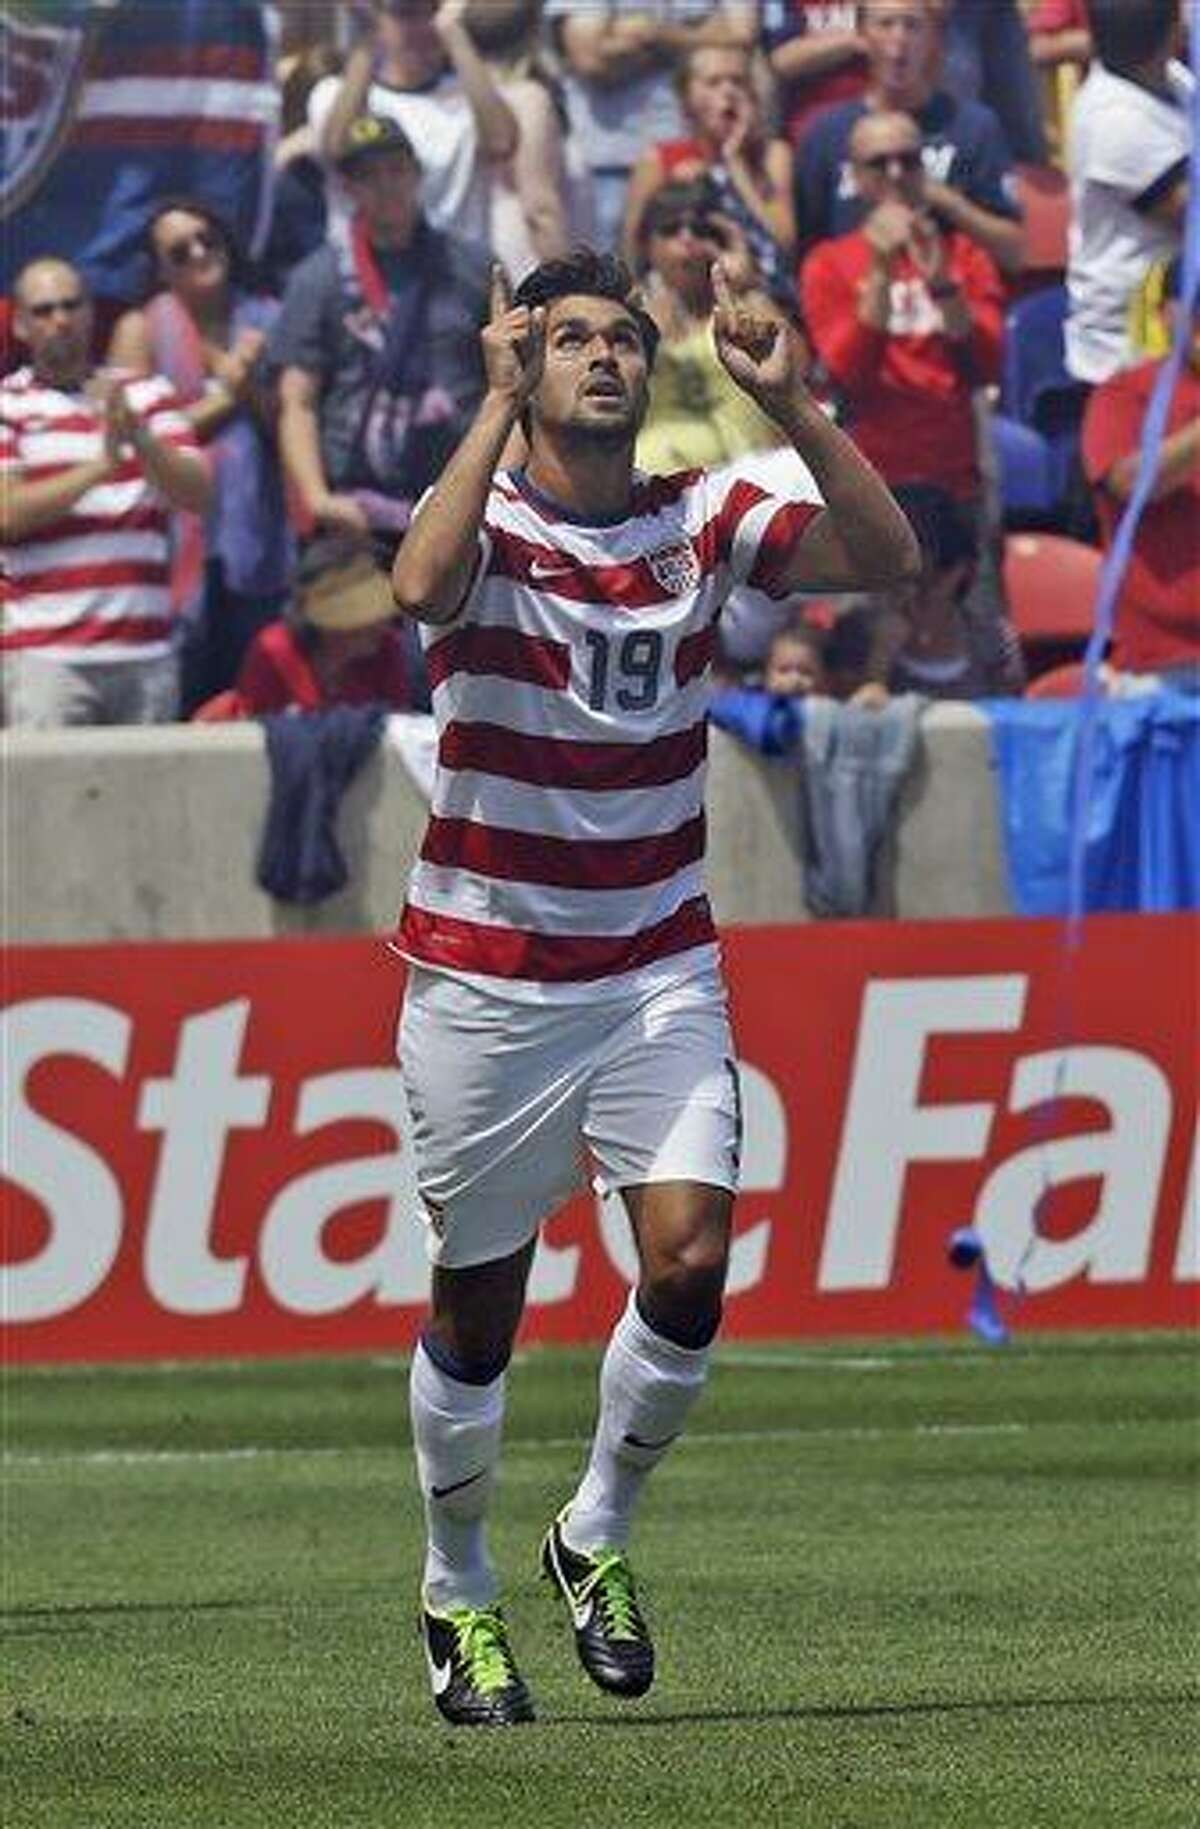 United States' Chris Wondolowski (19) celebrates after scoring against Cuba during the second half of a CONCACAF Gold Cup soccer game on Saturday, July 13, 2013, in Sandy, Utah. United States defeated Cuba 4-1. (AP Photo/Rick Bowmer)